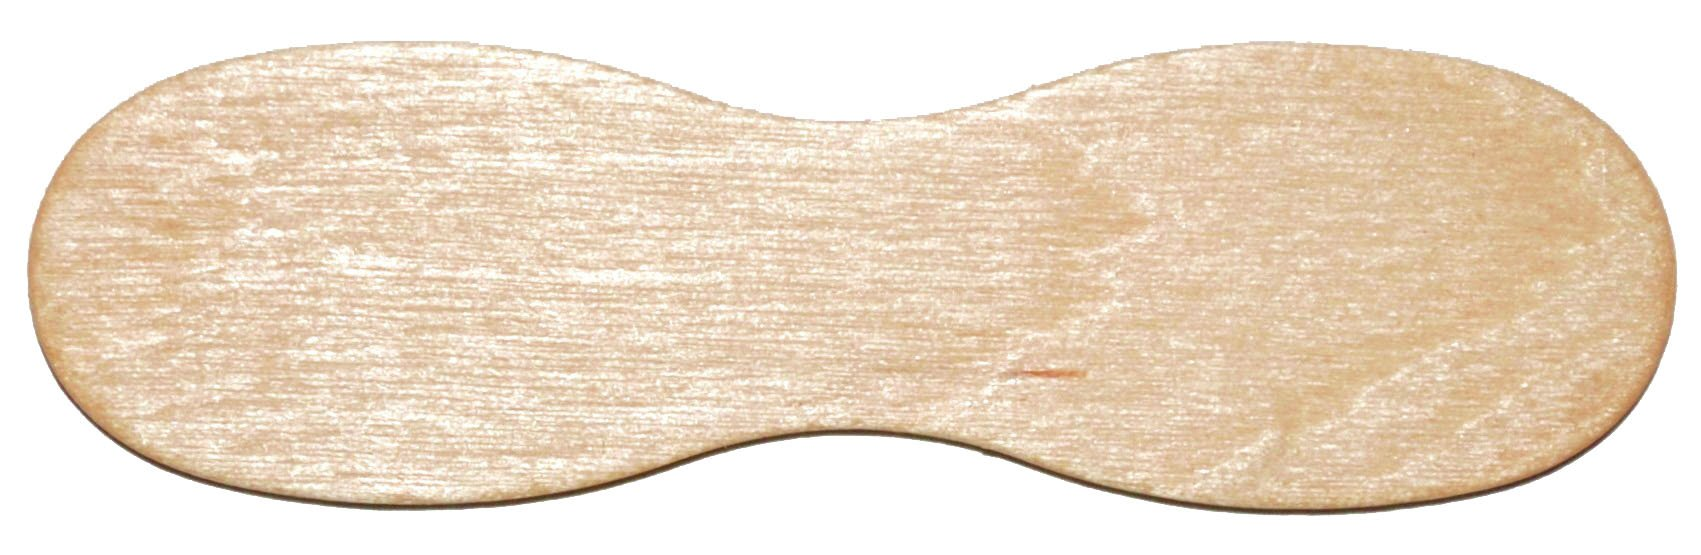 Perfect stix 60MM Plain Wooden Taster Spoons 2 3/8'' Length ( Box of 10,000)